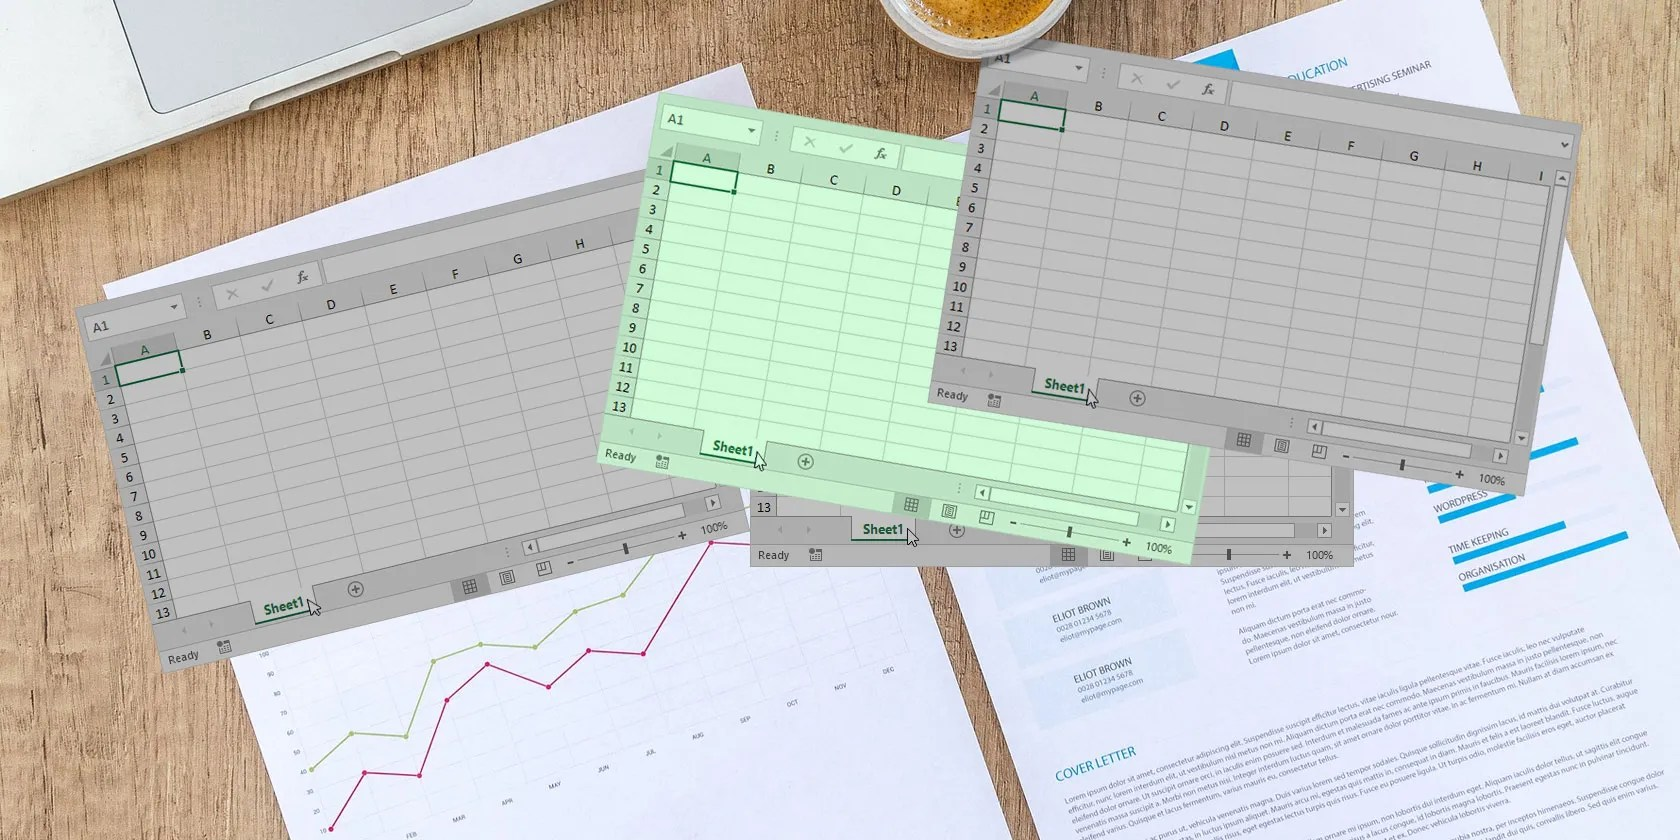 How To Hide And Unhide Sheets In Excel